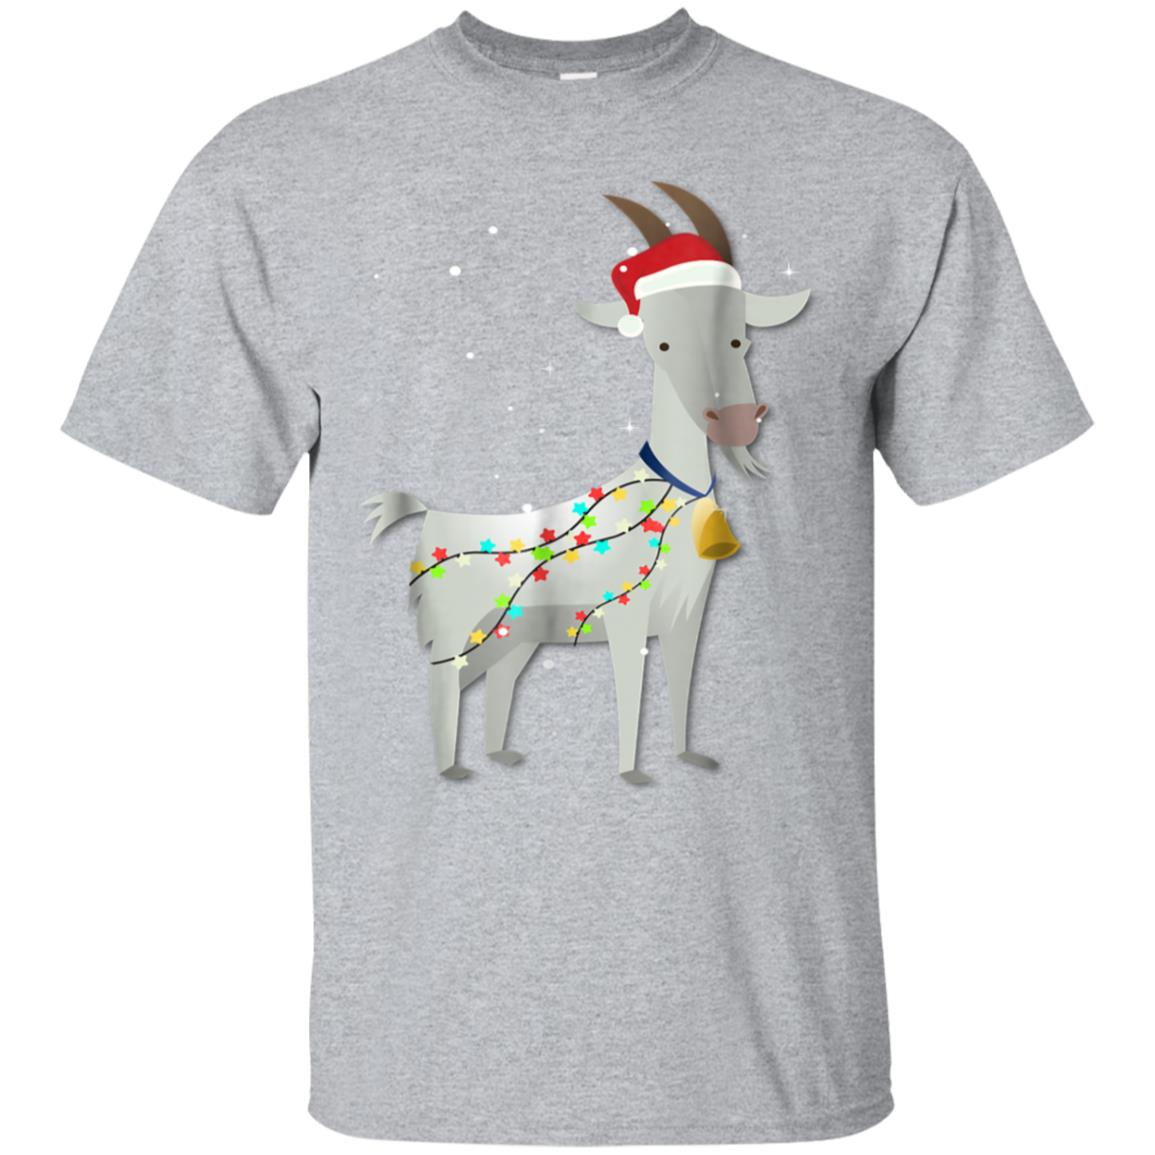 Goat Christmas T Shirt Funny Christmas Gift for Goat Lover 99promocode